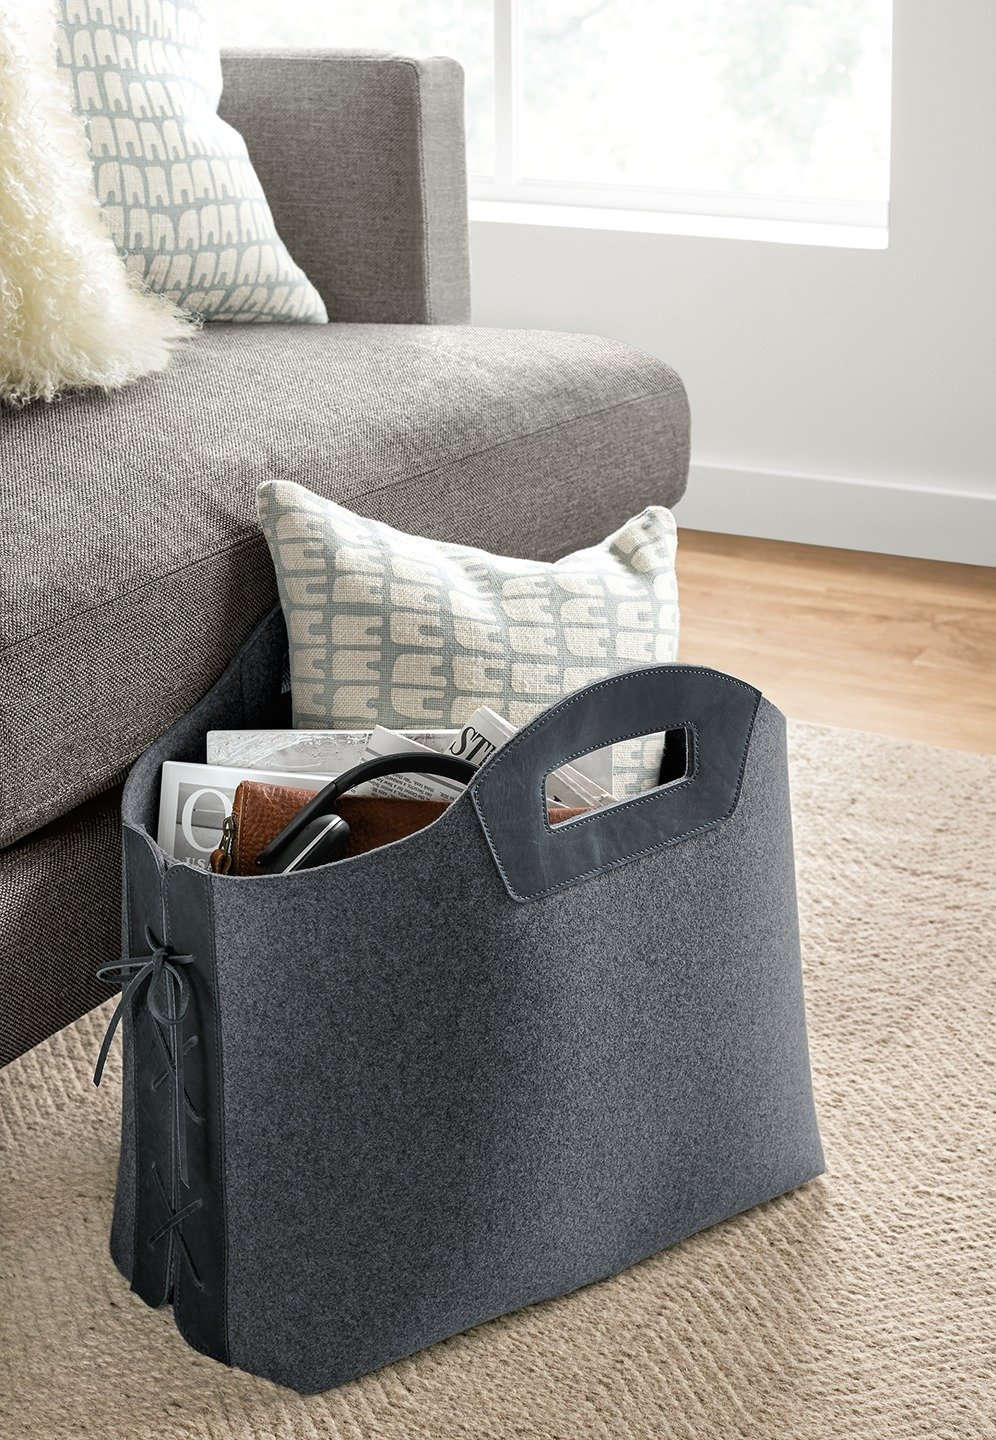 How to Use Modern Home Decor in Unexpected Ways - Photo 2 of 9 - Use an unusual basket or tote as both an organizational tool and statement piece. The tote stands upright so you can easily place it next to your sofa or under your desk.